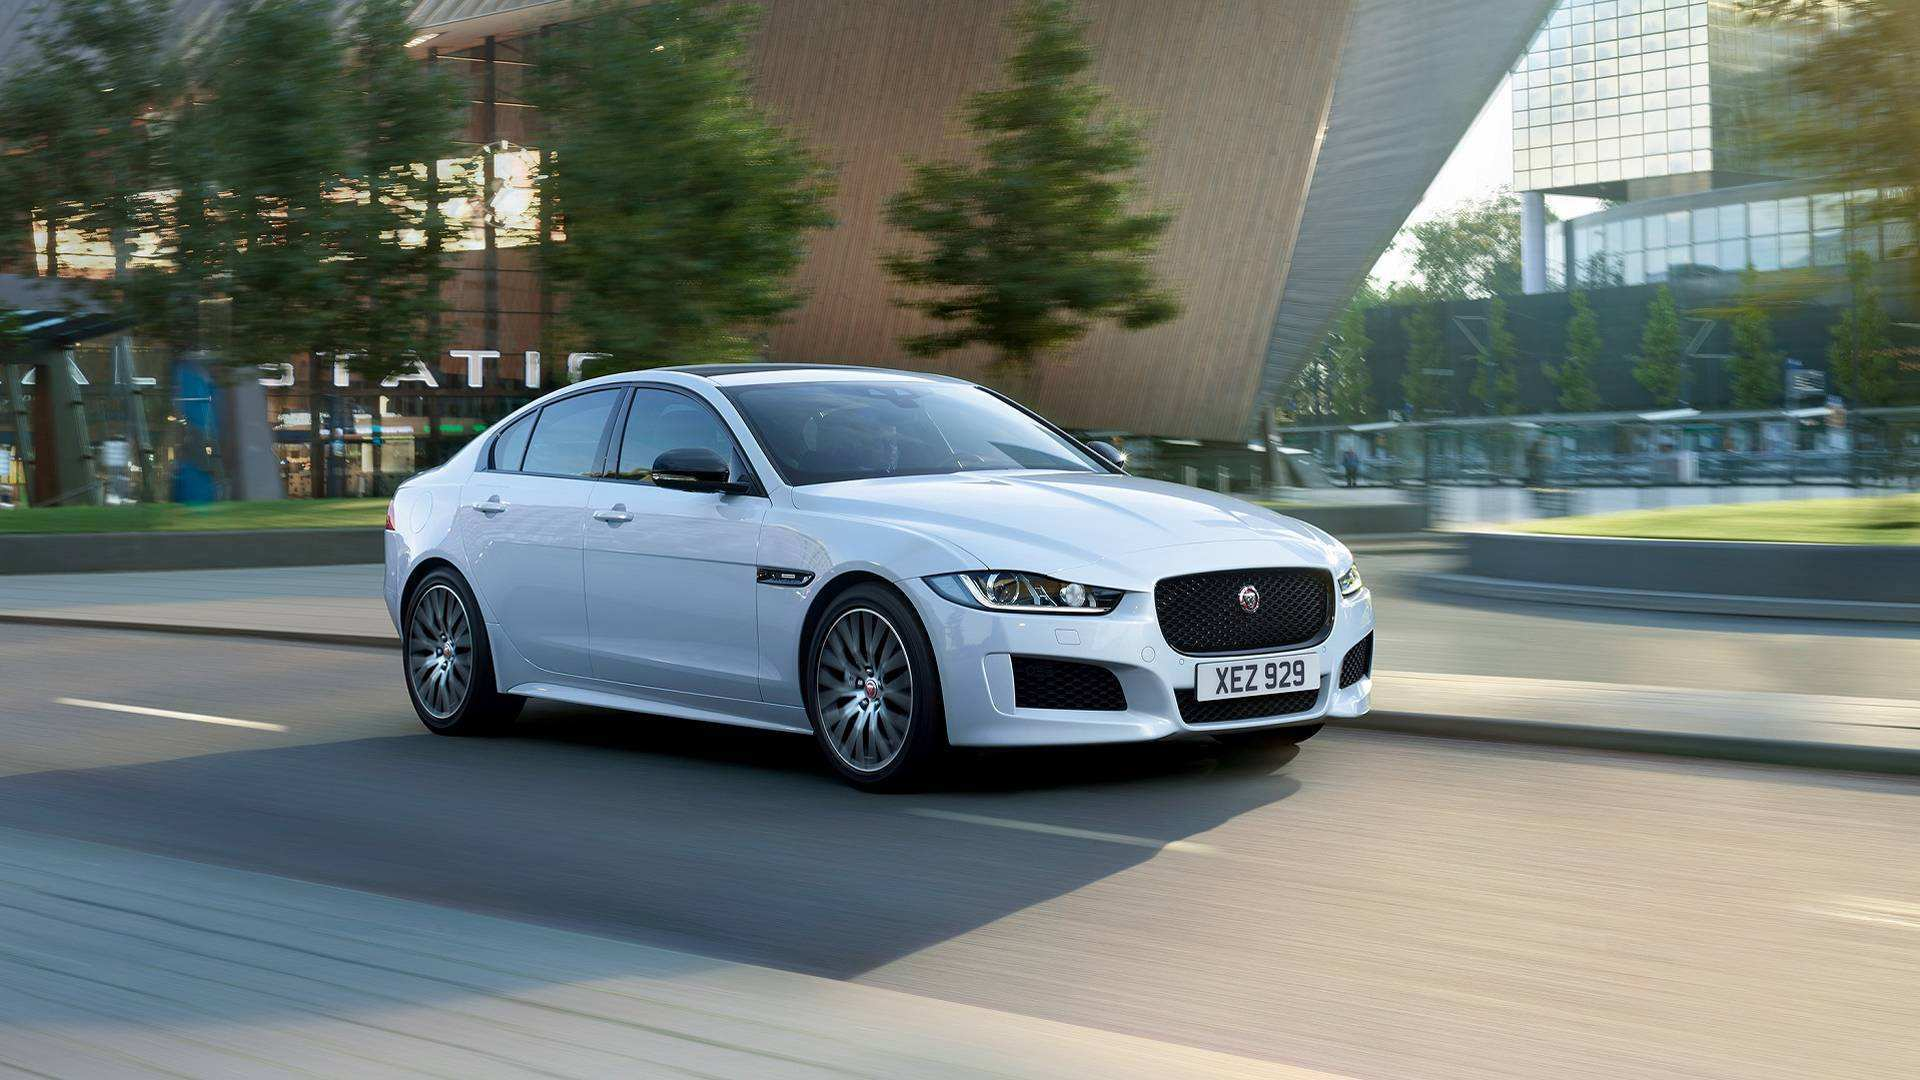 30 Great Jaguar Xe 2019 Exterior and Interior for Jaguar Xe 2019